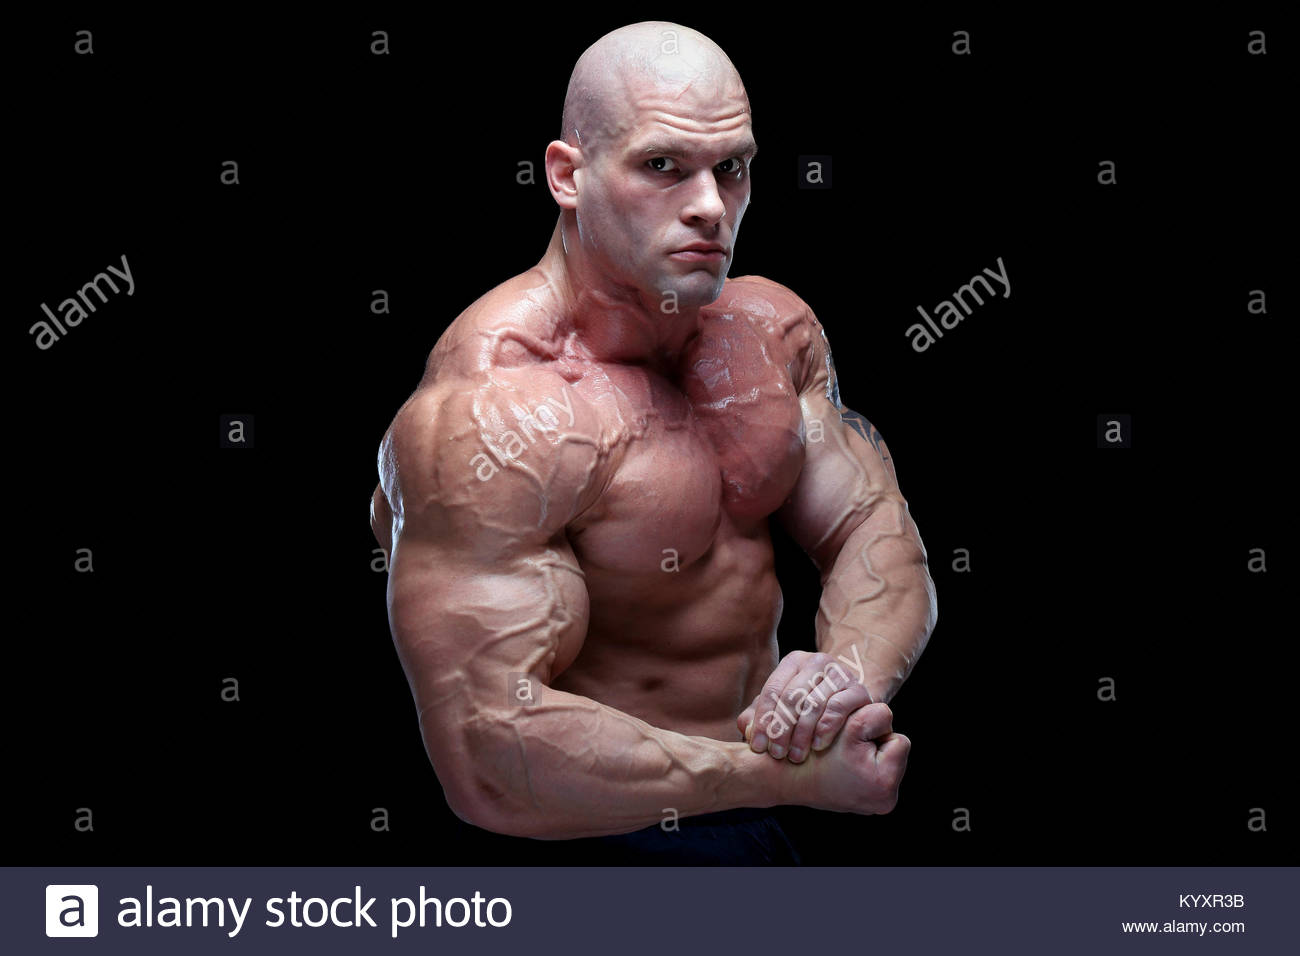 Beau mâle musclé posing in front of black background Photo Stock